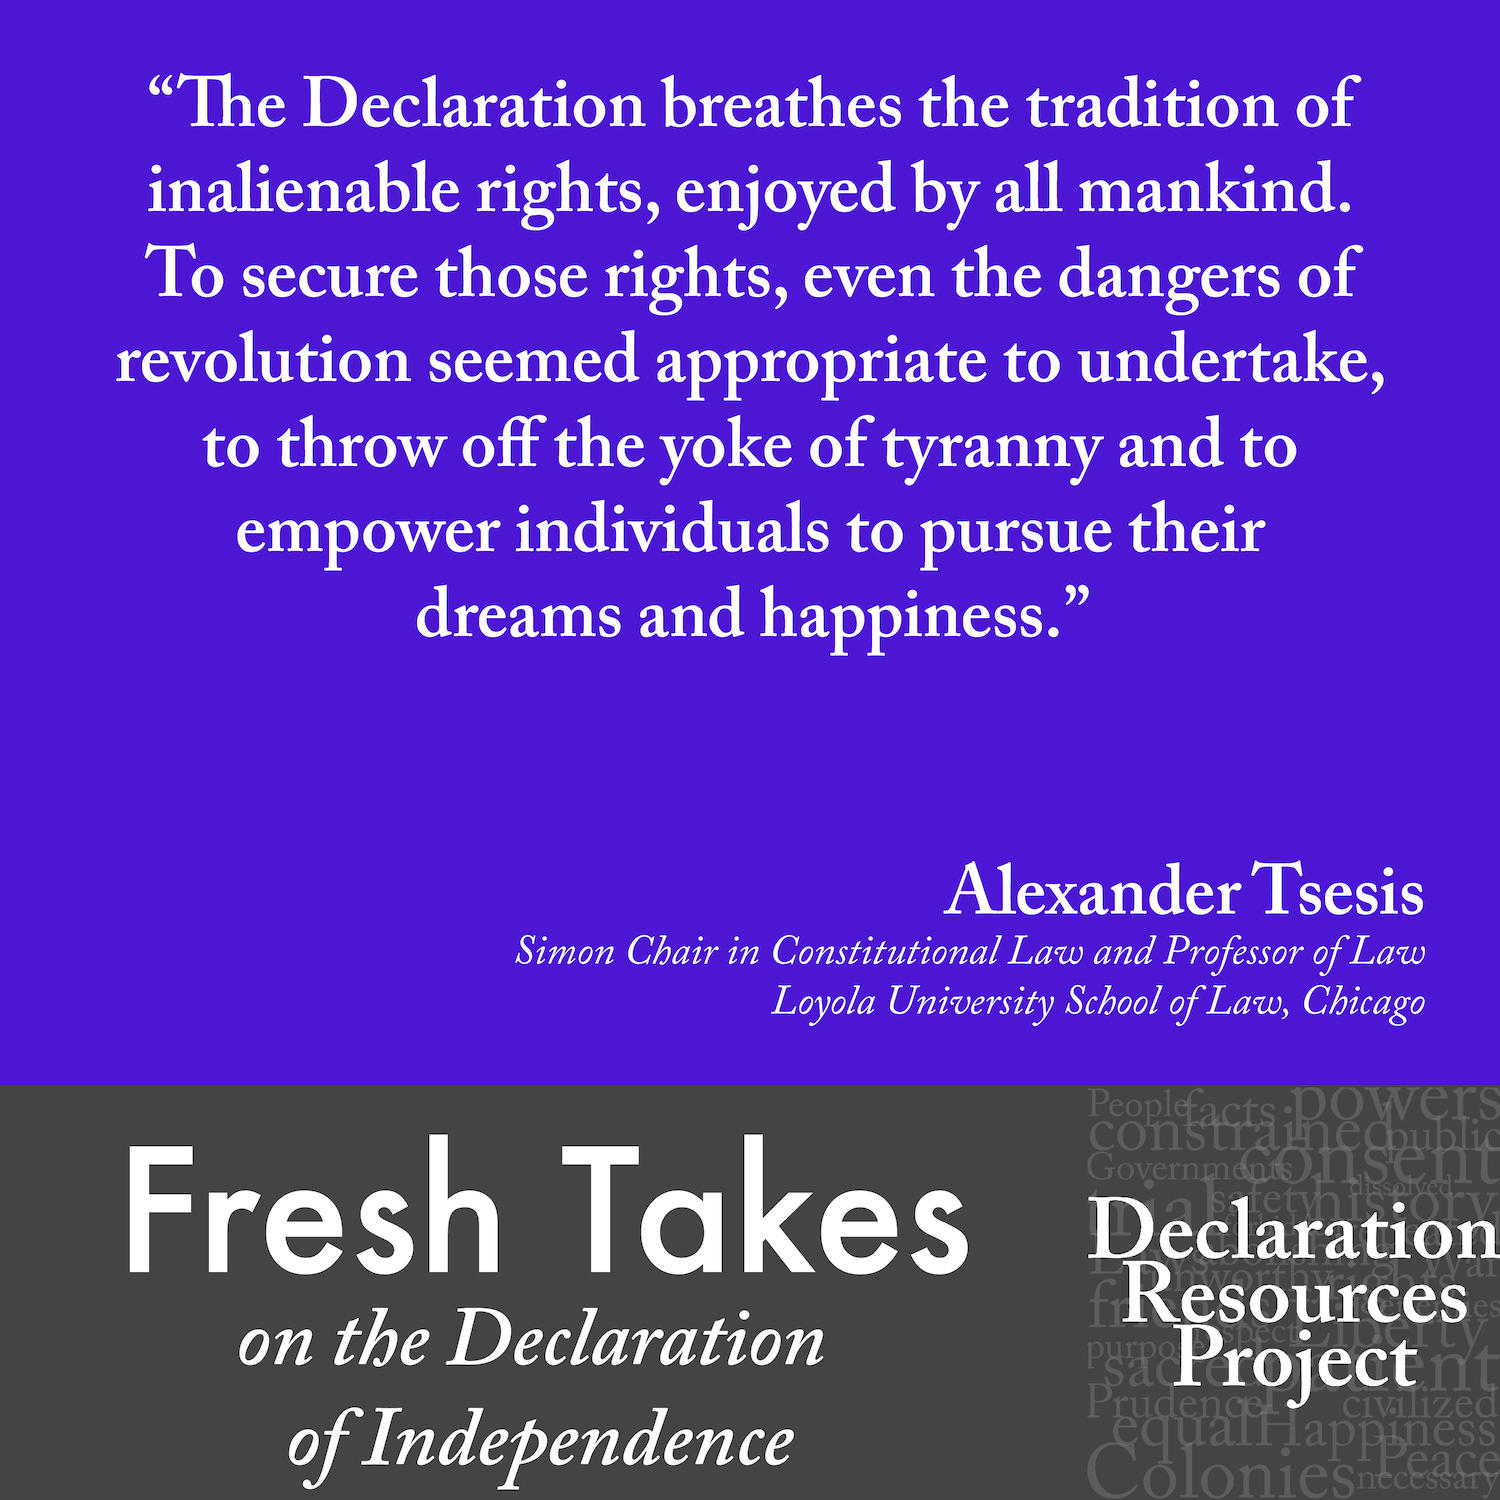 Alexander Tsesis's Fresh Take on the Declaration of Independence